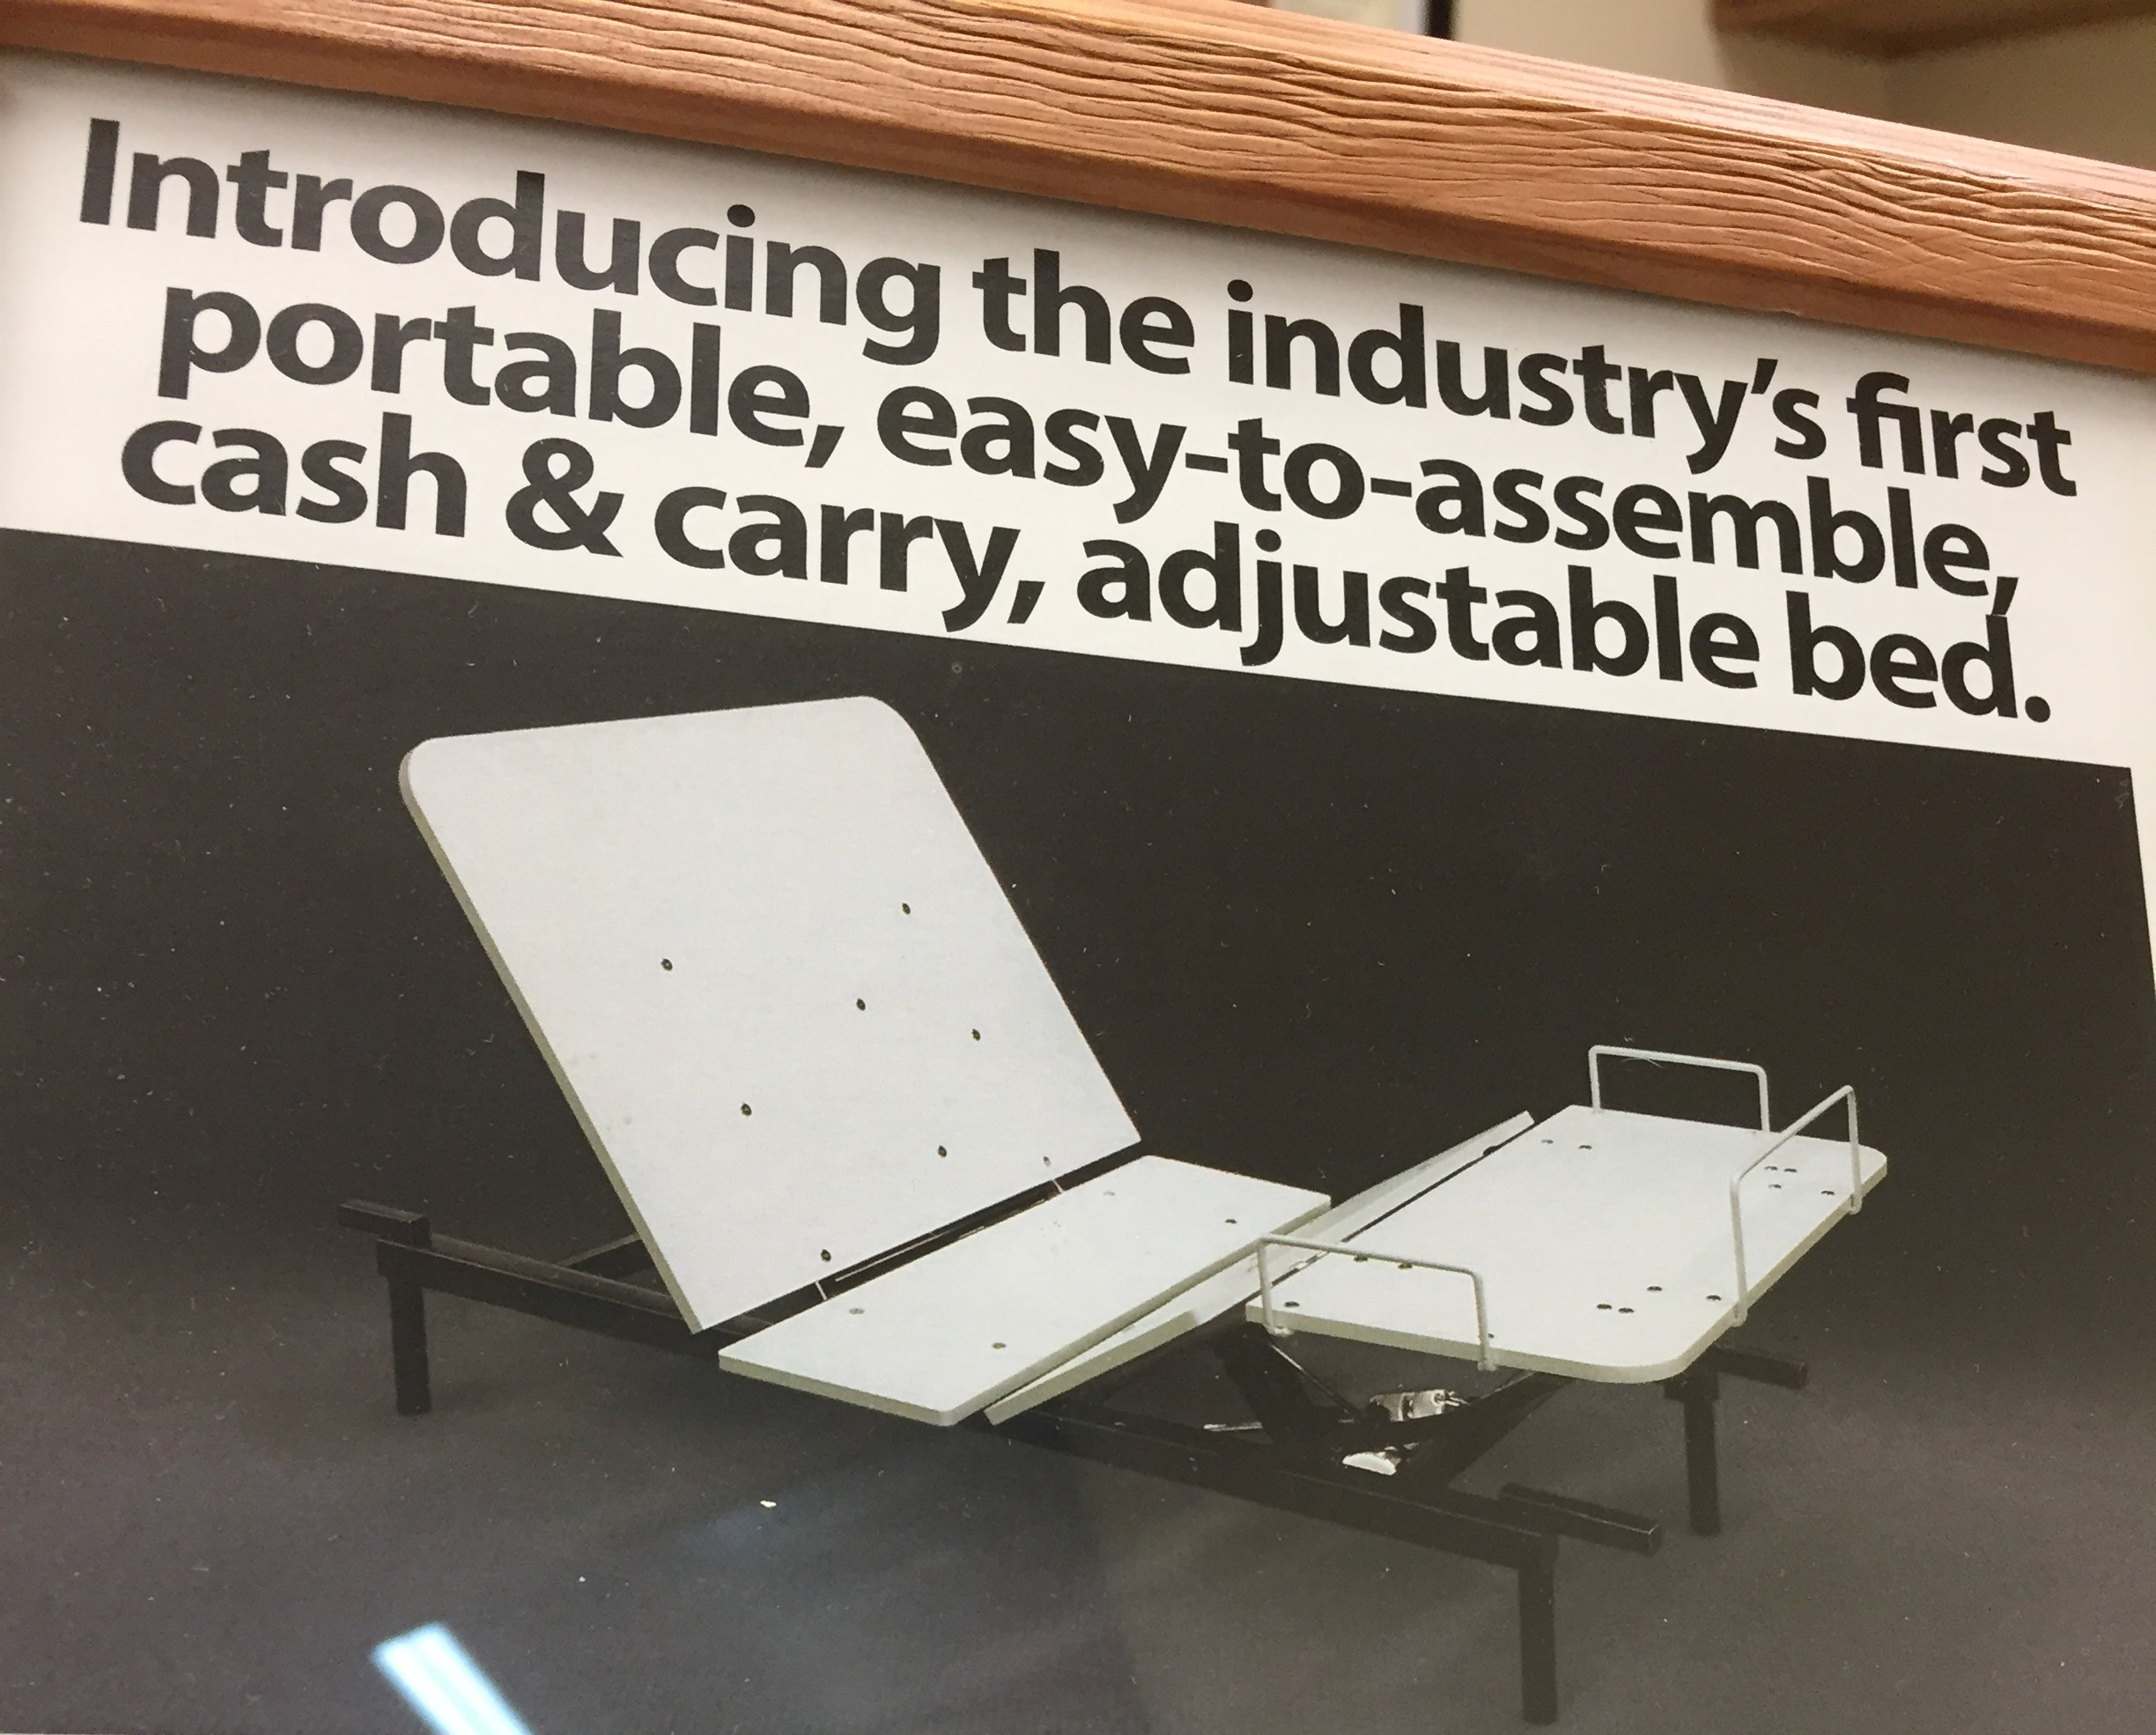 Portable, adjustable bed